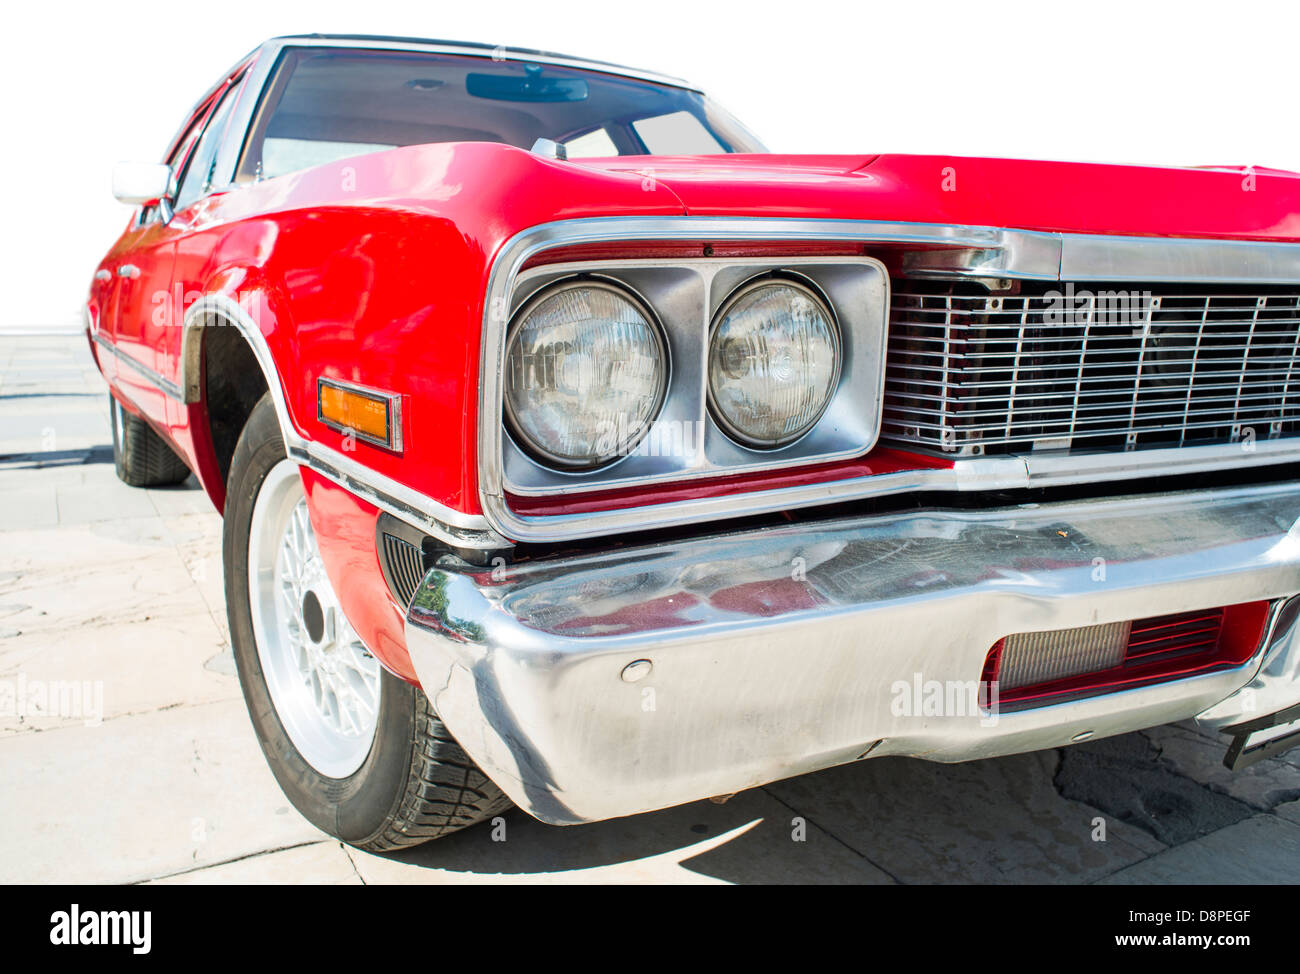 Old vintage retro car. Red color american car. White isolated - Stock Image